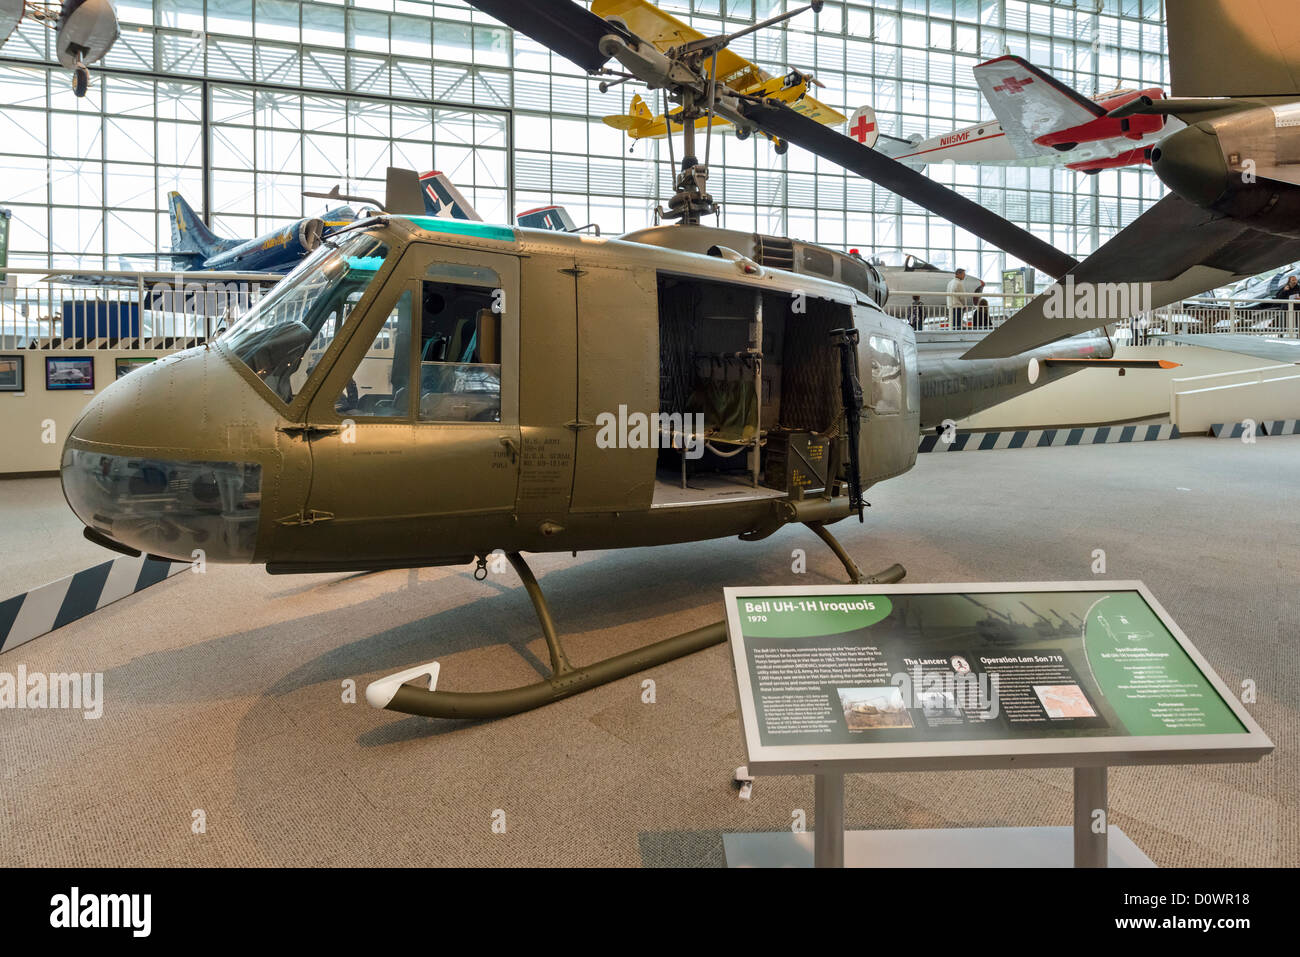 A 1970 Bell UH1-1H (Huey) helicopter, The Great Gallery, Museum of Flight, Seattle, Washington, USA - Stock Image